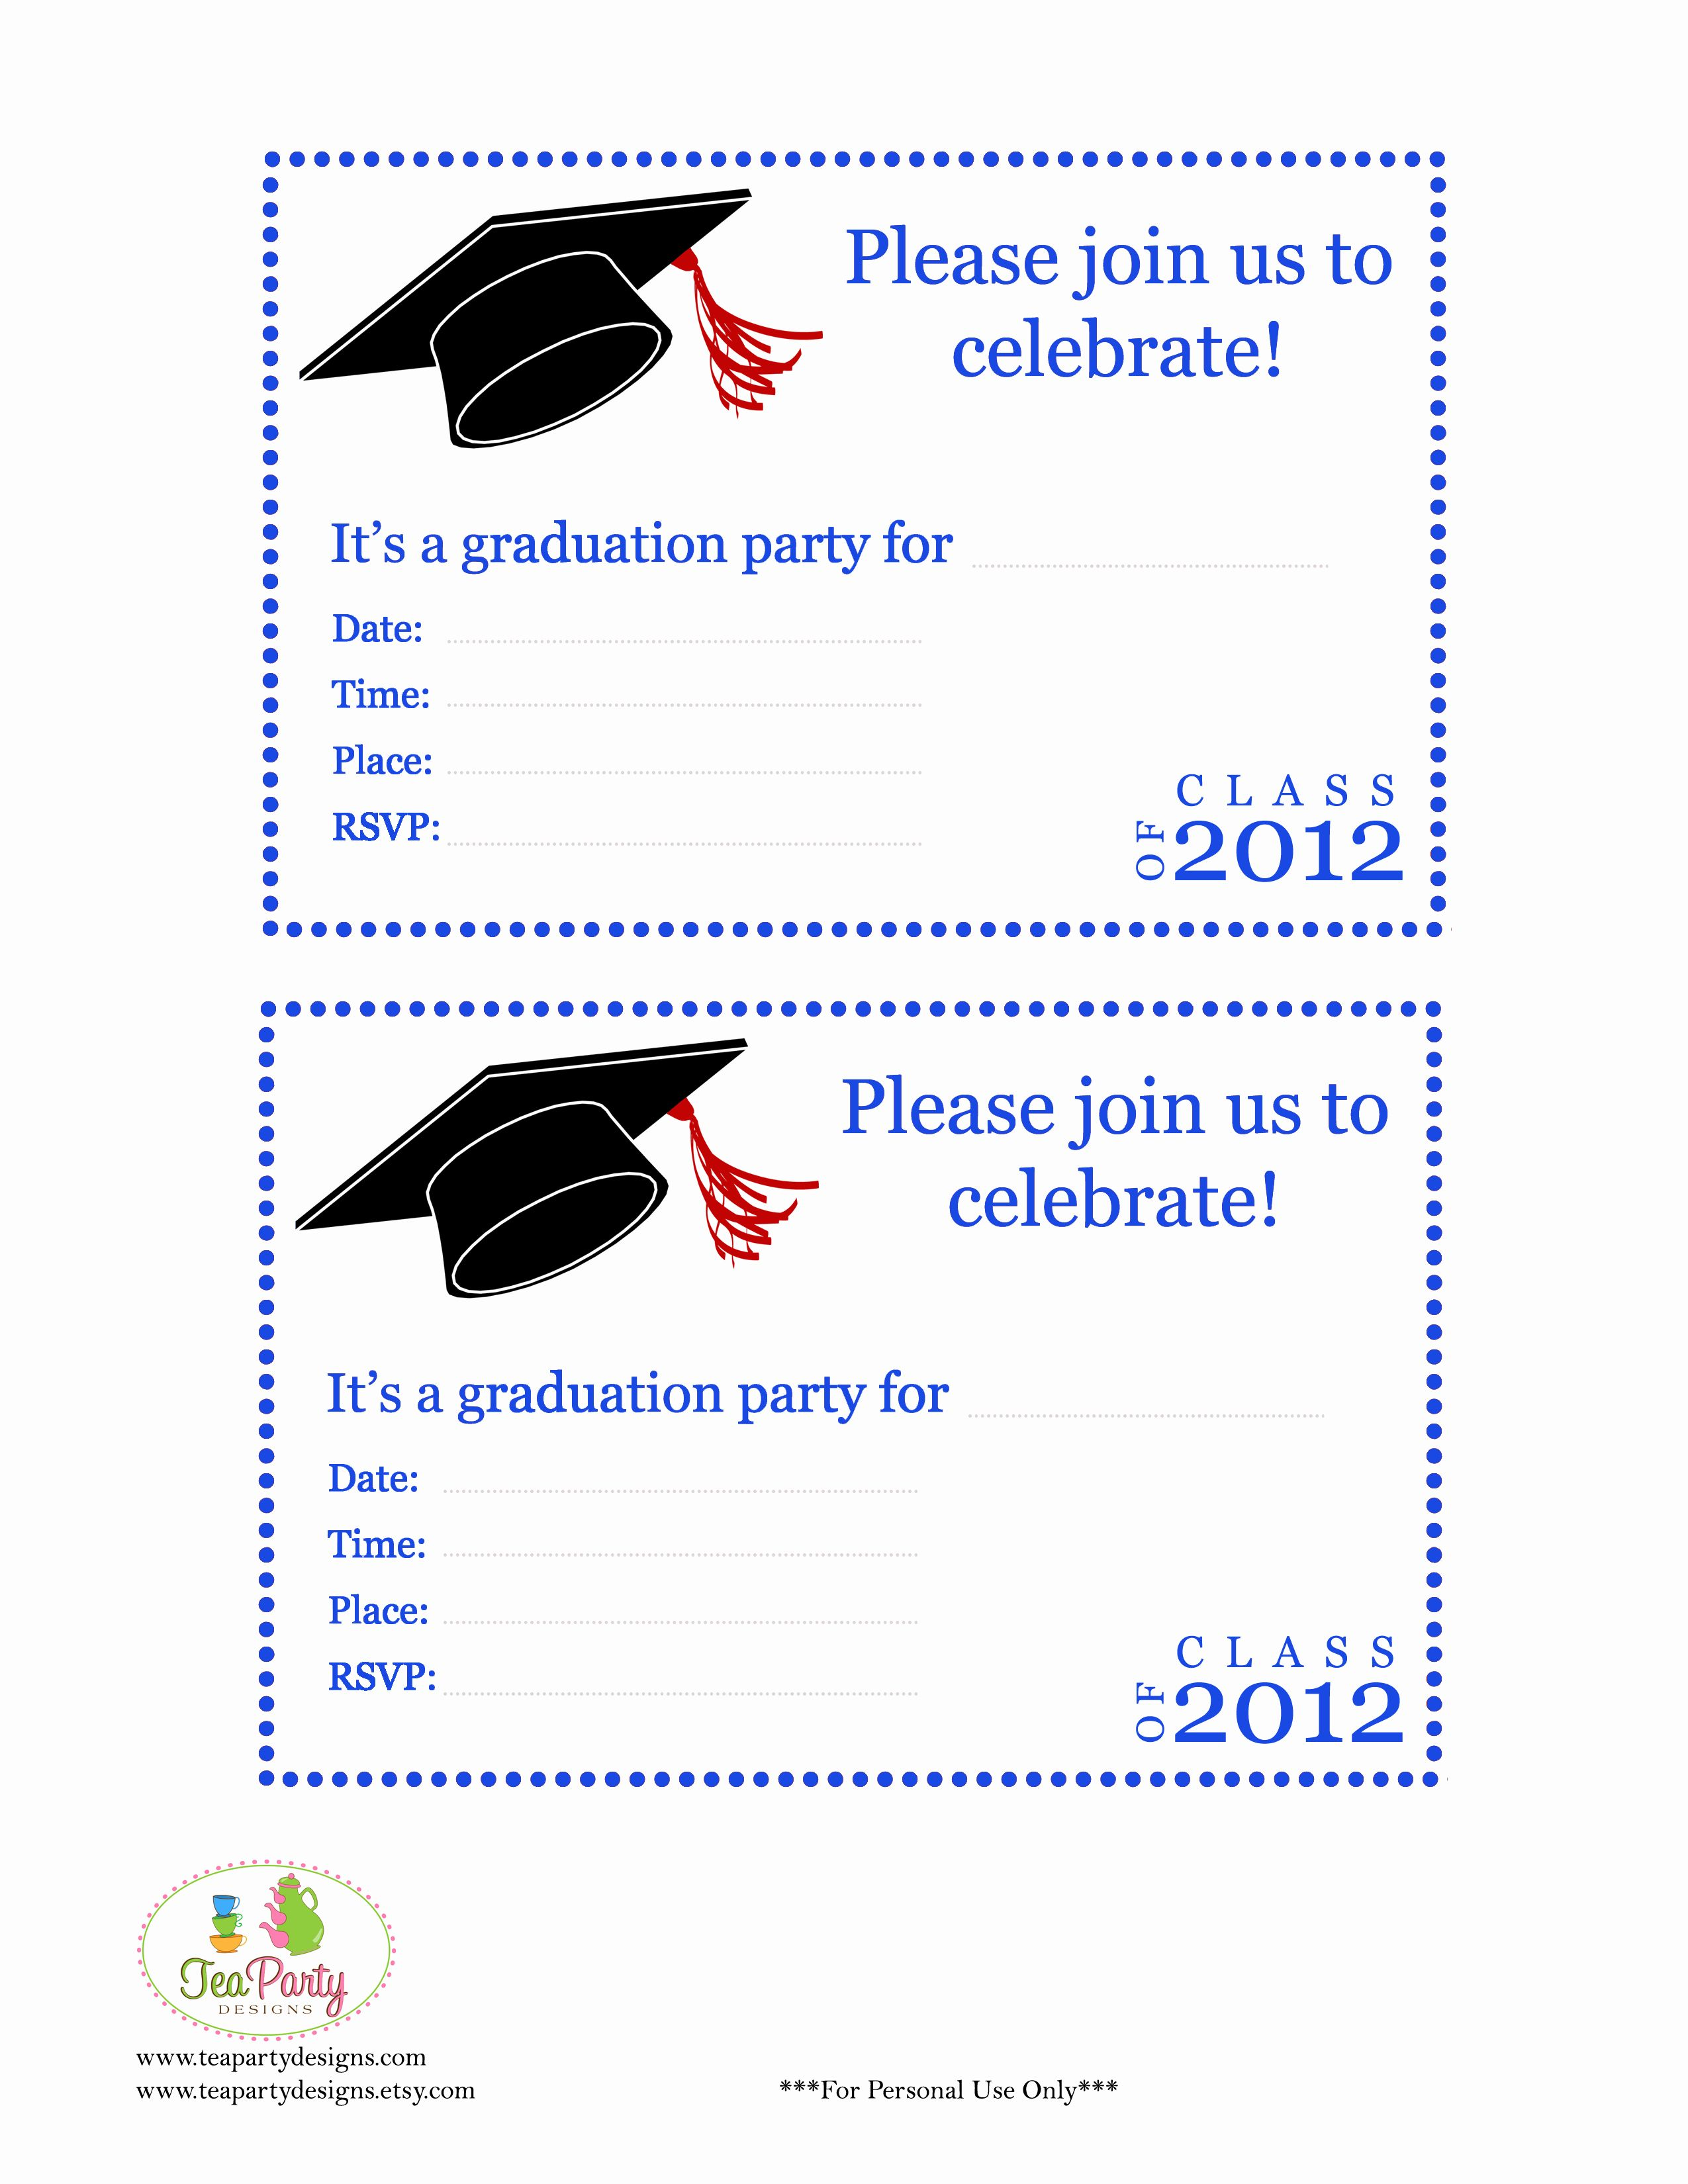 Graduation Card Template Word Awesome Free Preschool Gr Graduation Invitations Template Graduation Party Invitations Templates Graduation Announcement Template